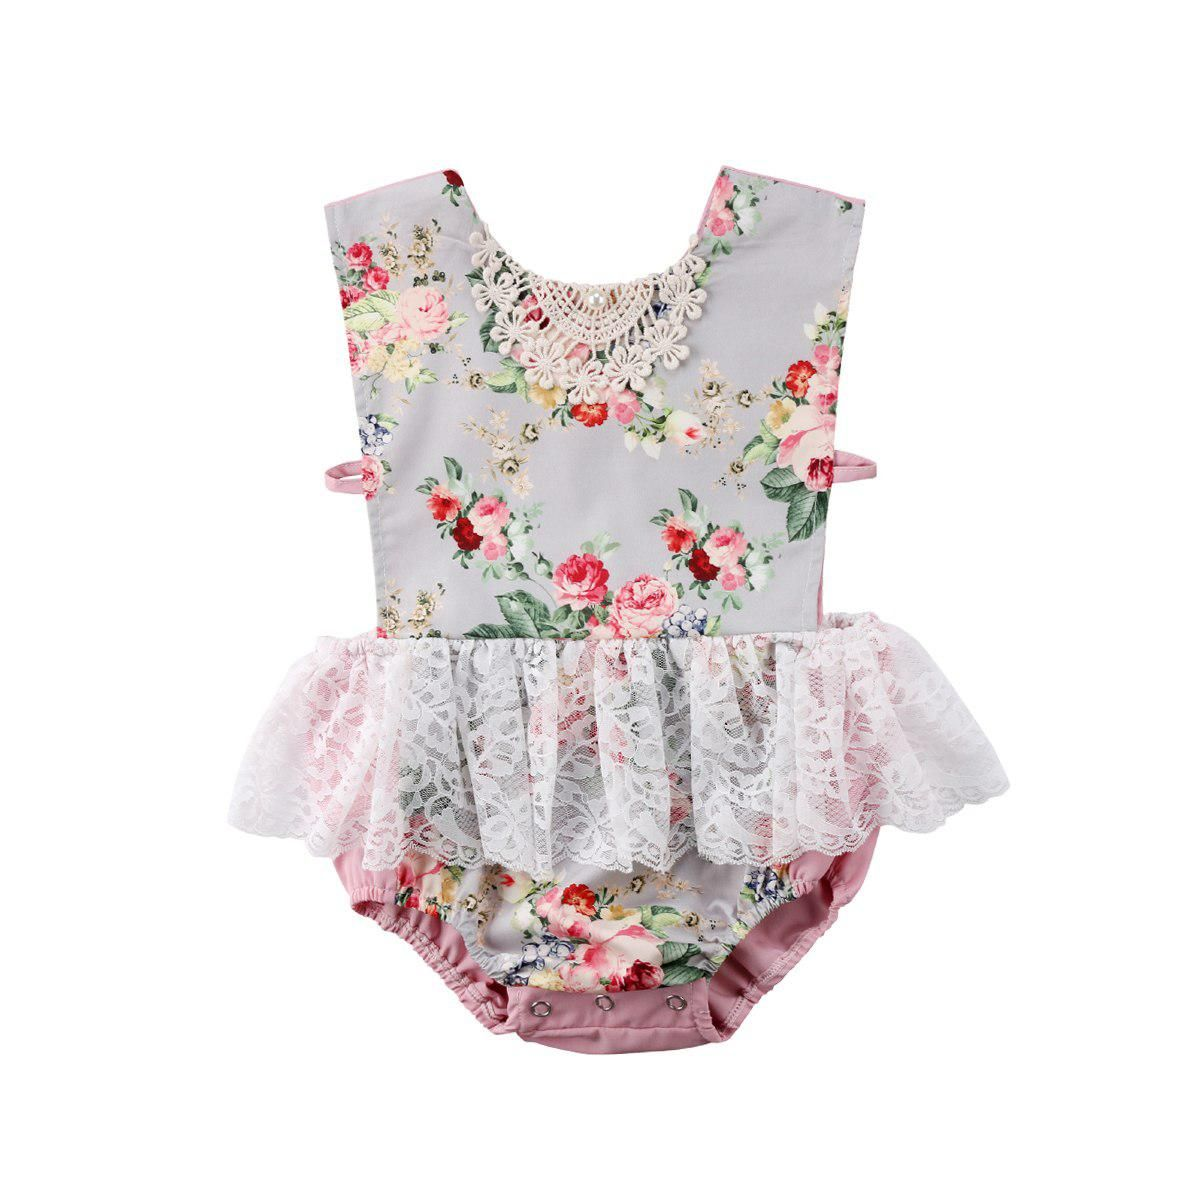 23d6242d2d3b Princess Newborn Infant Kid Baby Girl Sleeveless Colourful Floral Lace Tutu  Dress Skirt Romper Outfit 0-18M. Yesterday s price  US  5.25 (4.69 EUR).